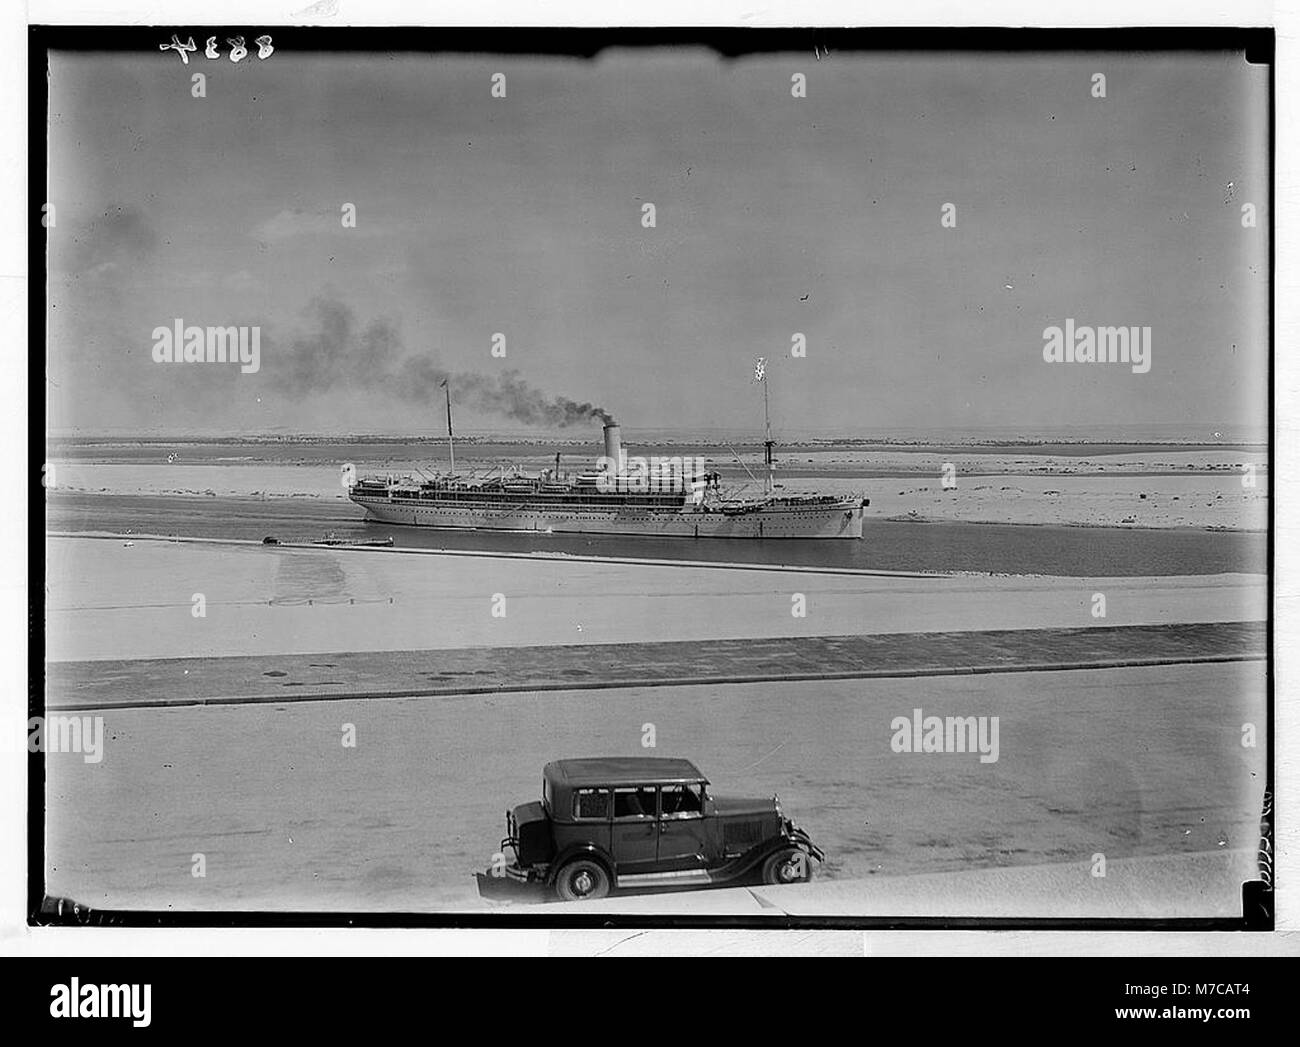 Egypt. Ismailia. Ship passing through the canal. Taken from monum(ent) terrace, closer LOC matpc.03809 - Stock Image